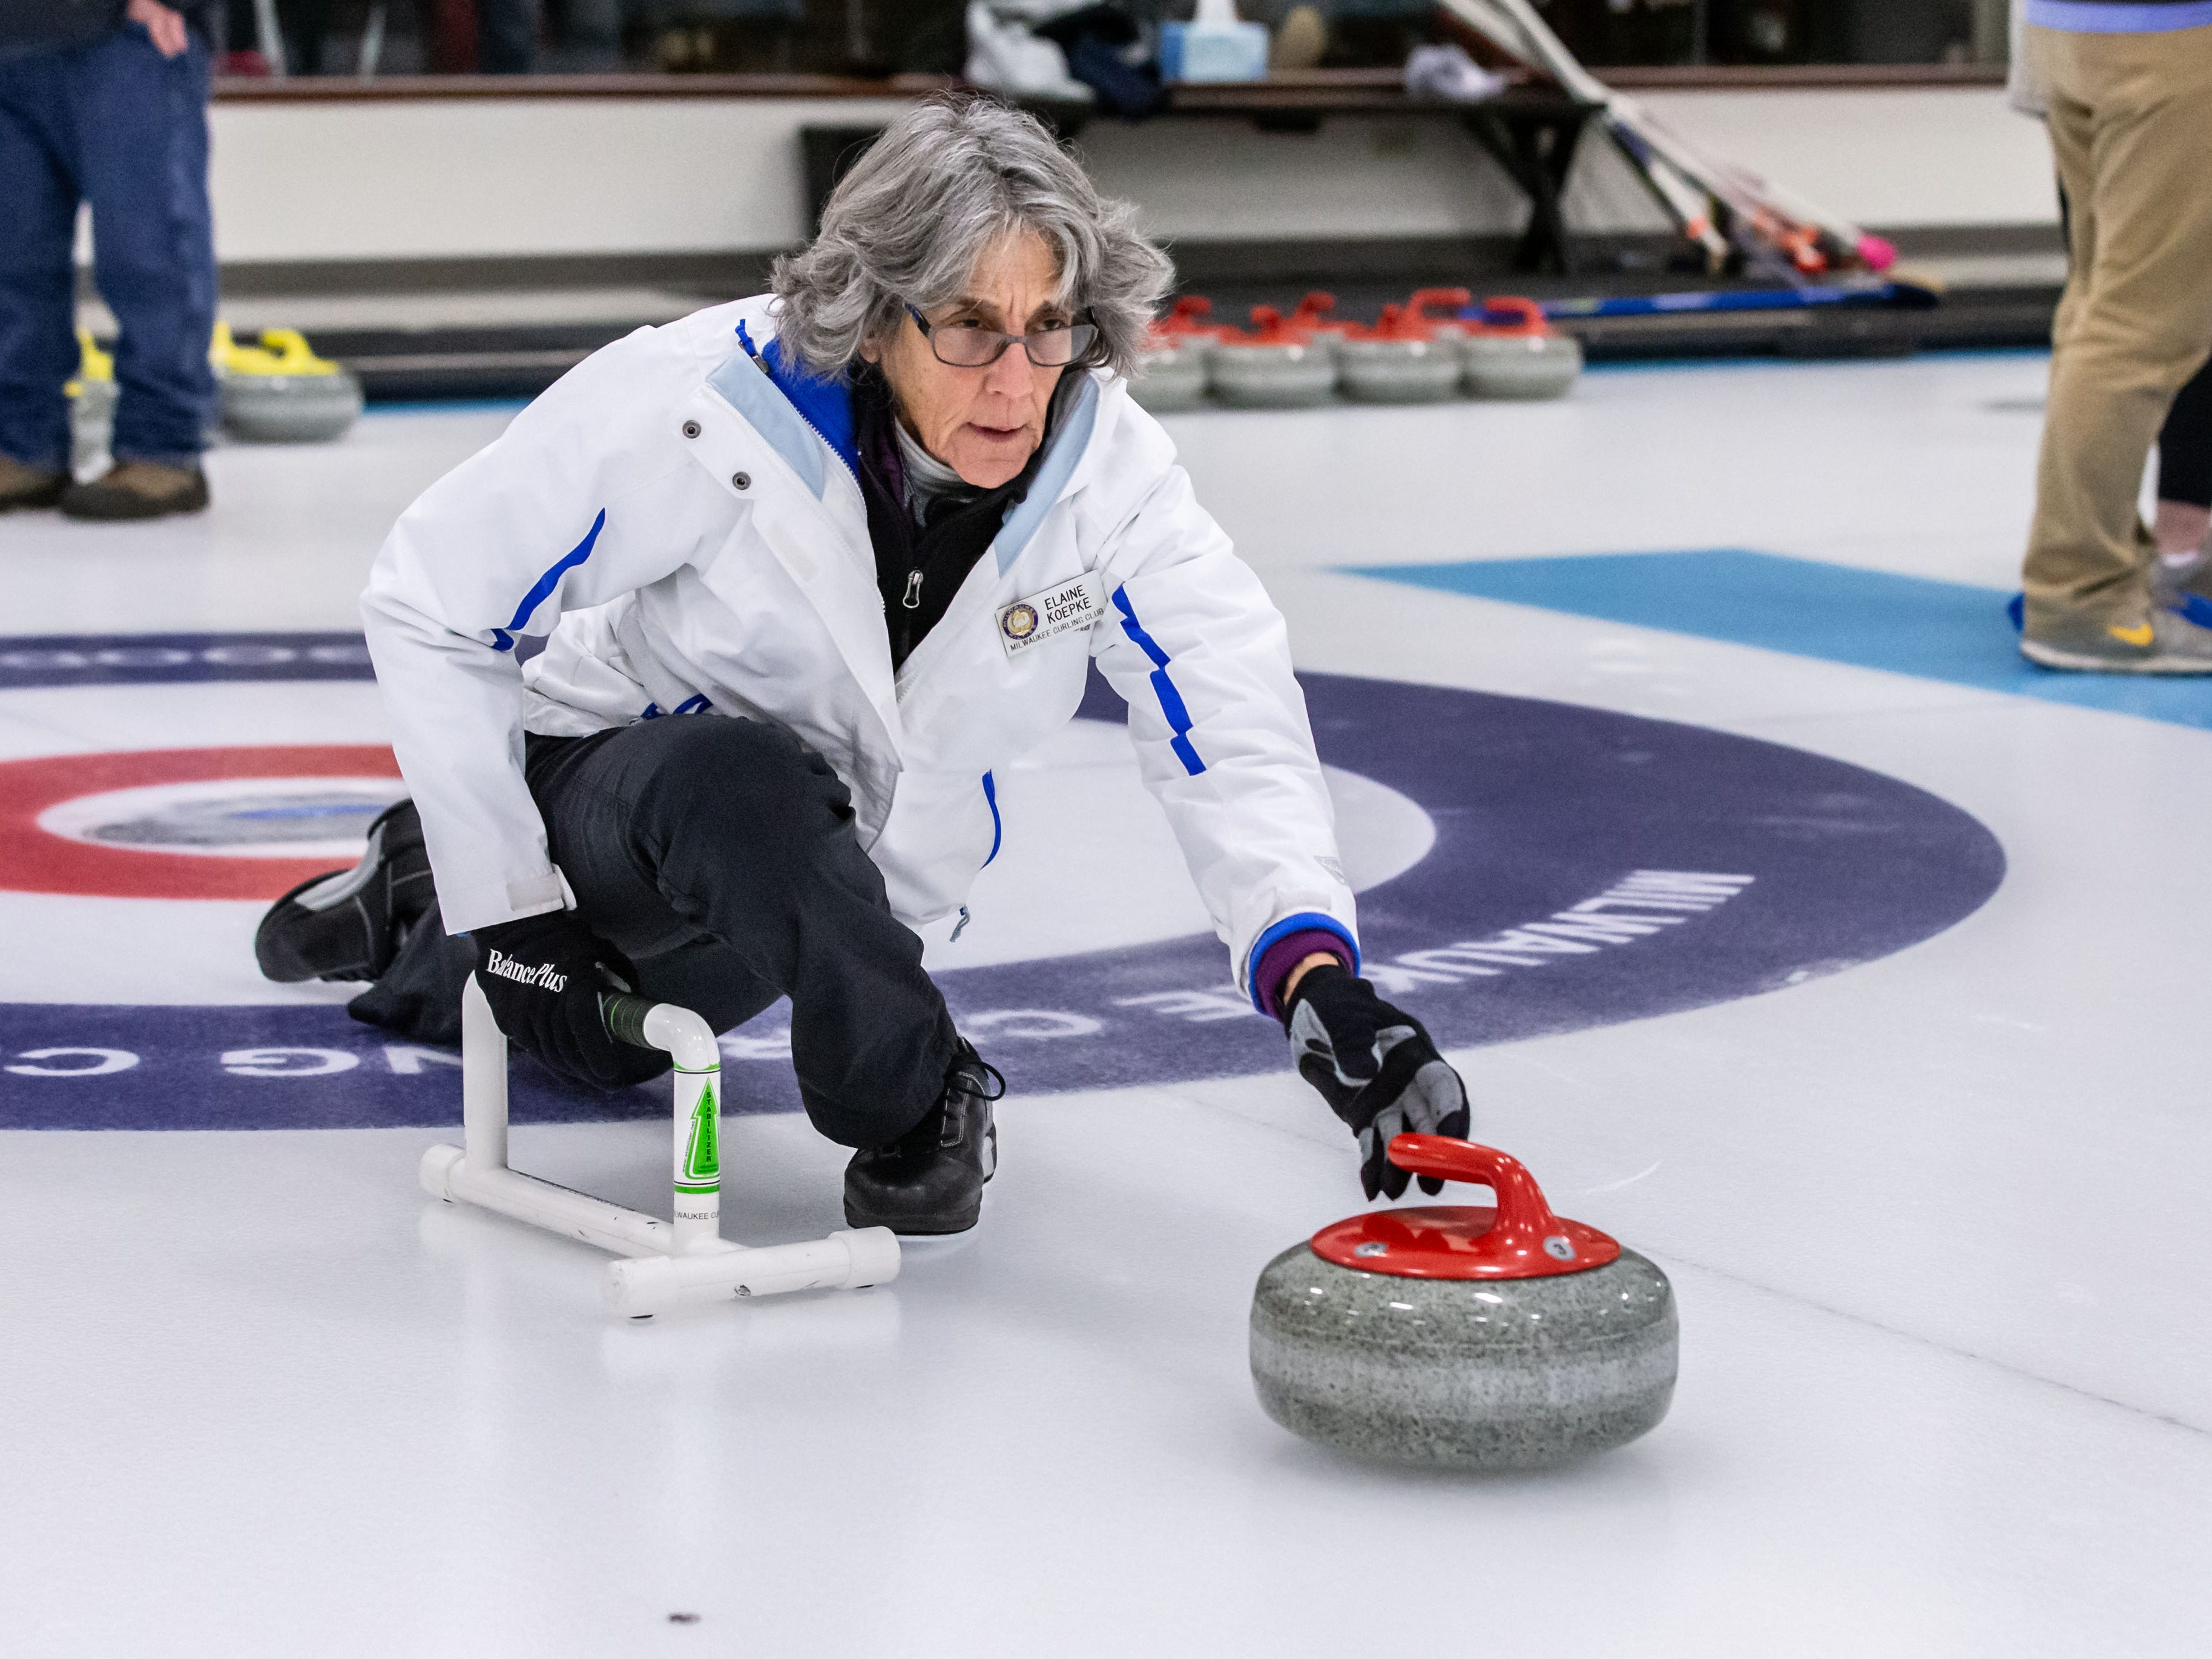 Curling instructors Elaine Koepke demonstrates releasing a stone during the Learn to Curl program at the Milwaukee Curling Club in Cedarburg on Saturday, Dec. 29, 2018.